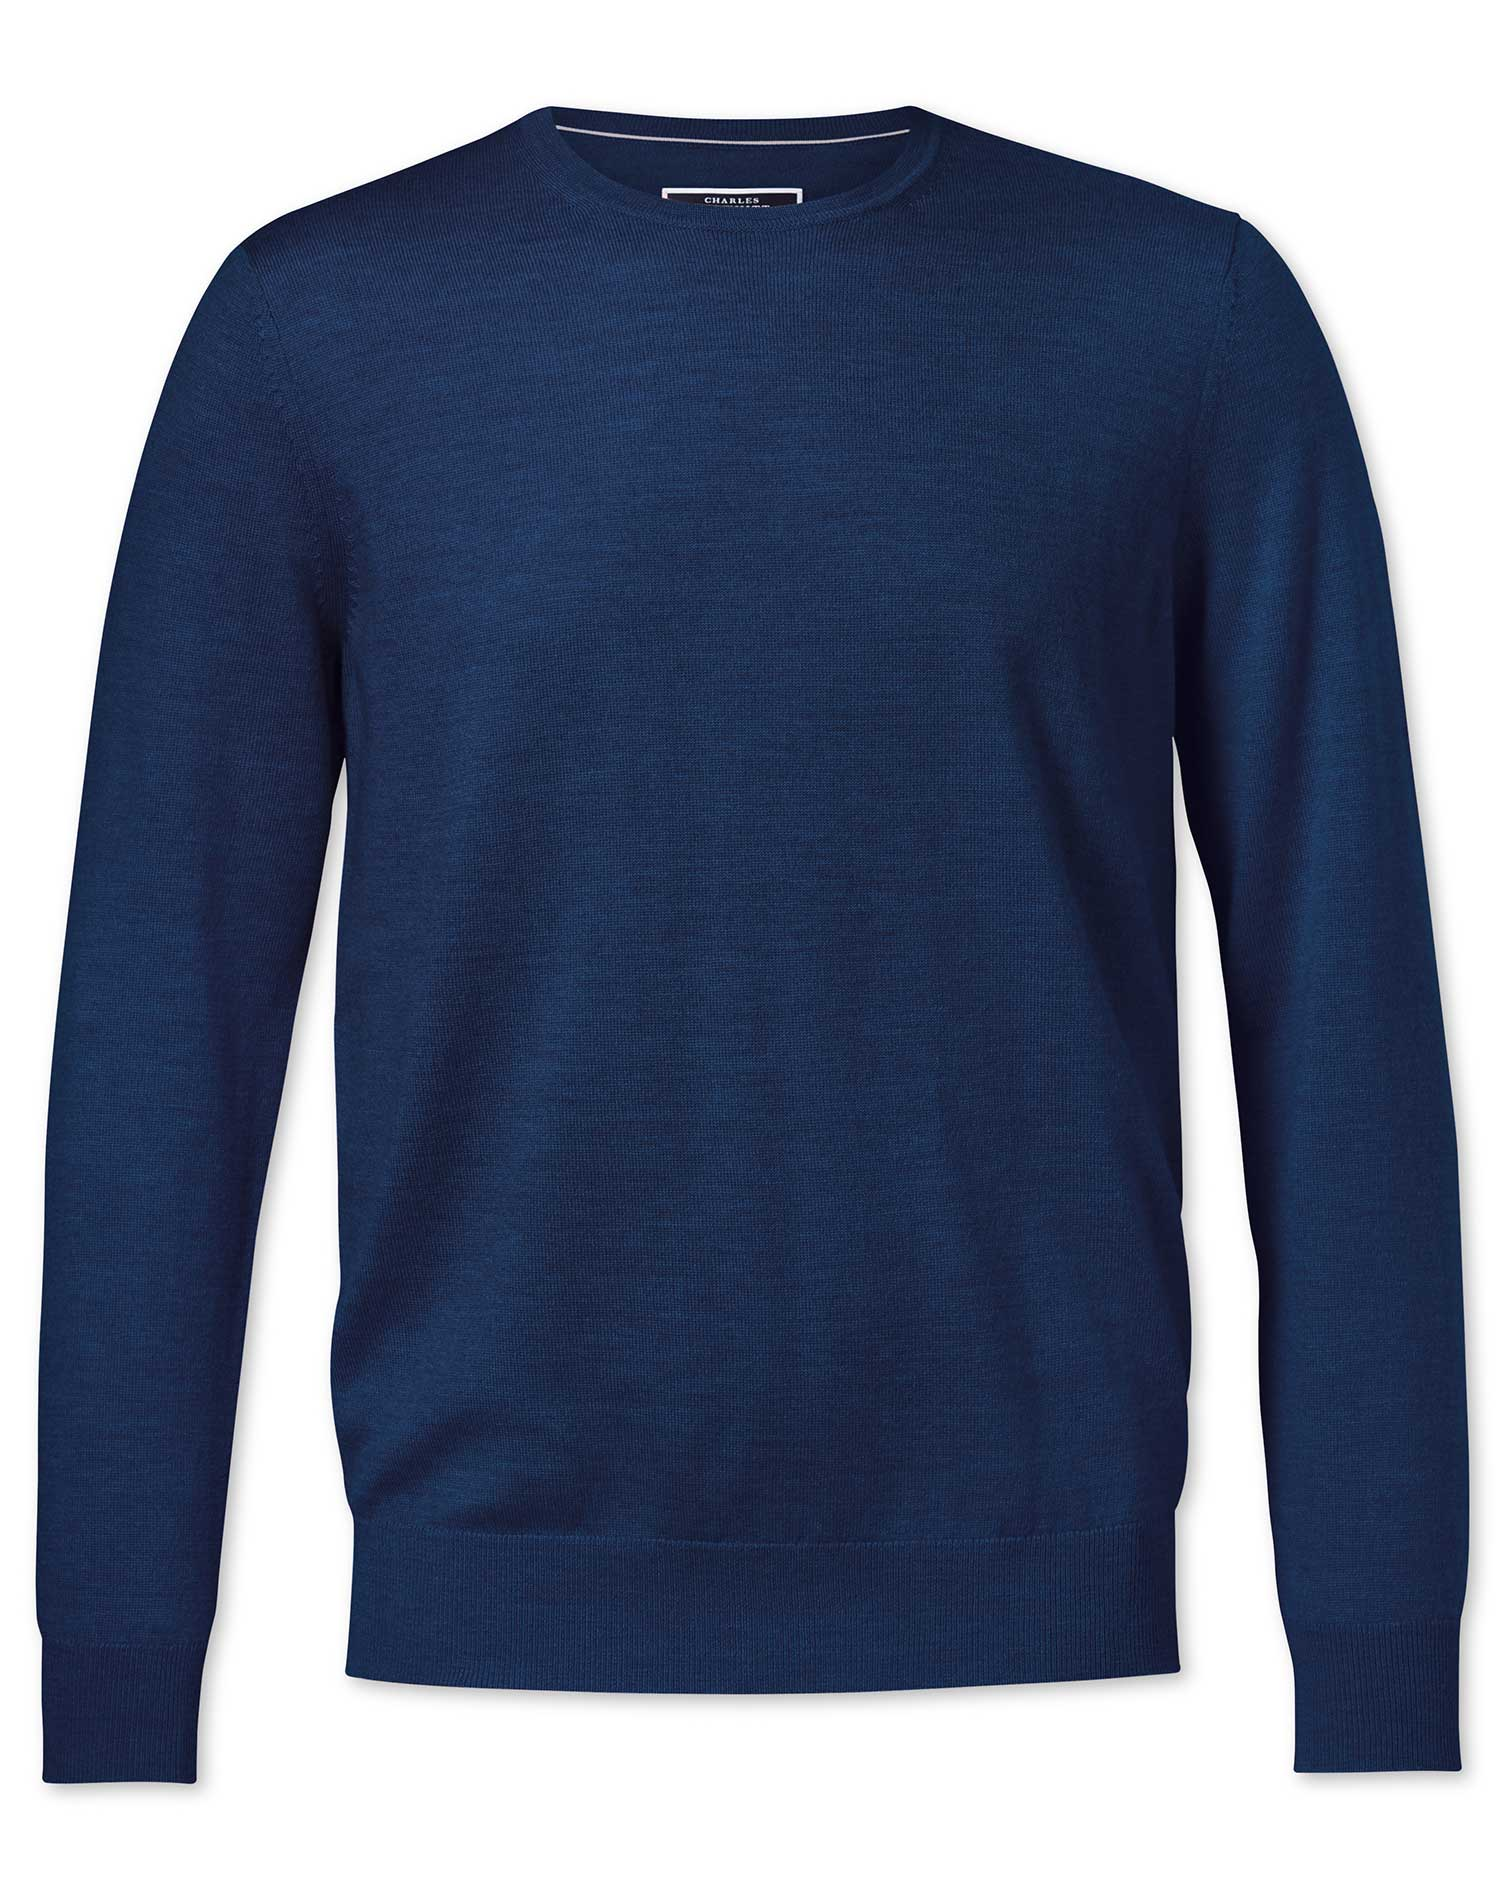 Royal Blue Merino Crew Neck Merino Wool Jumper Size XXXL by Charles Tyrwhitt